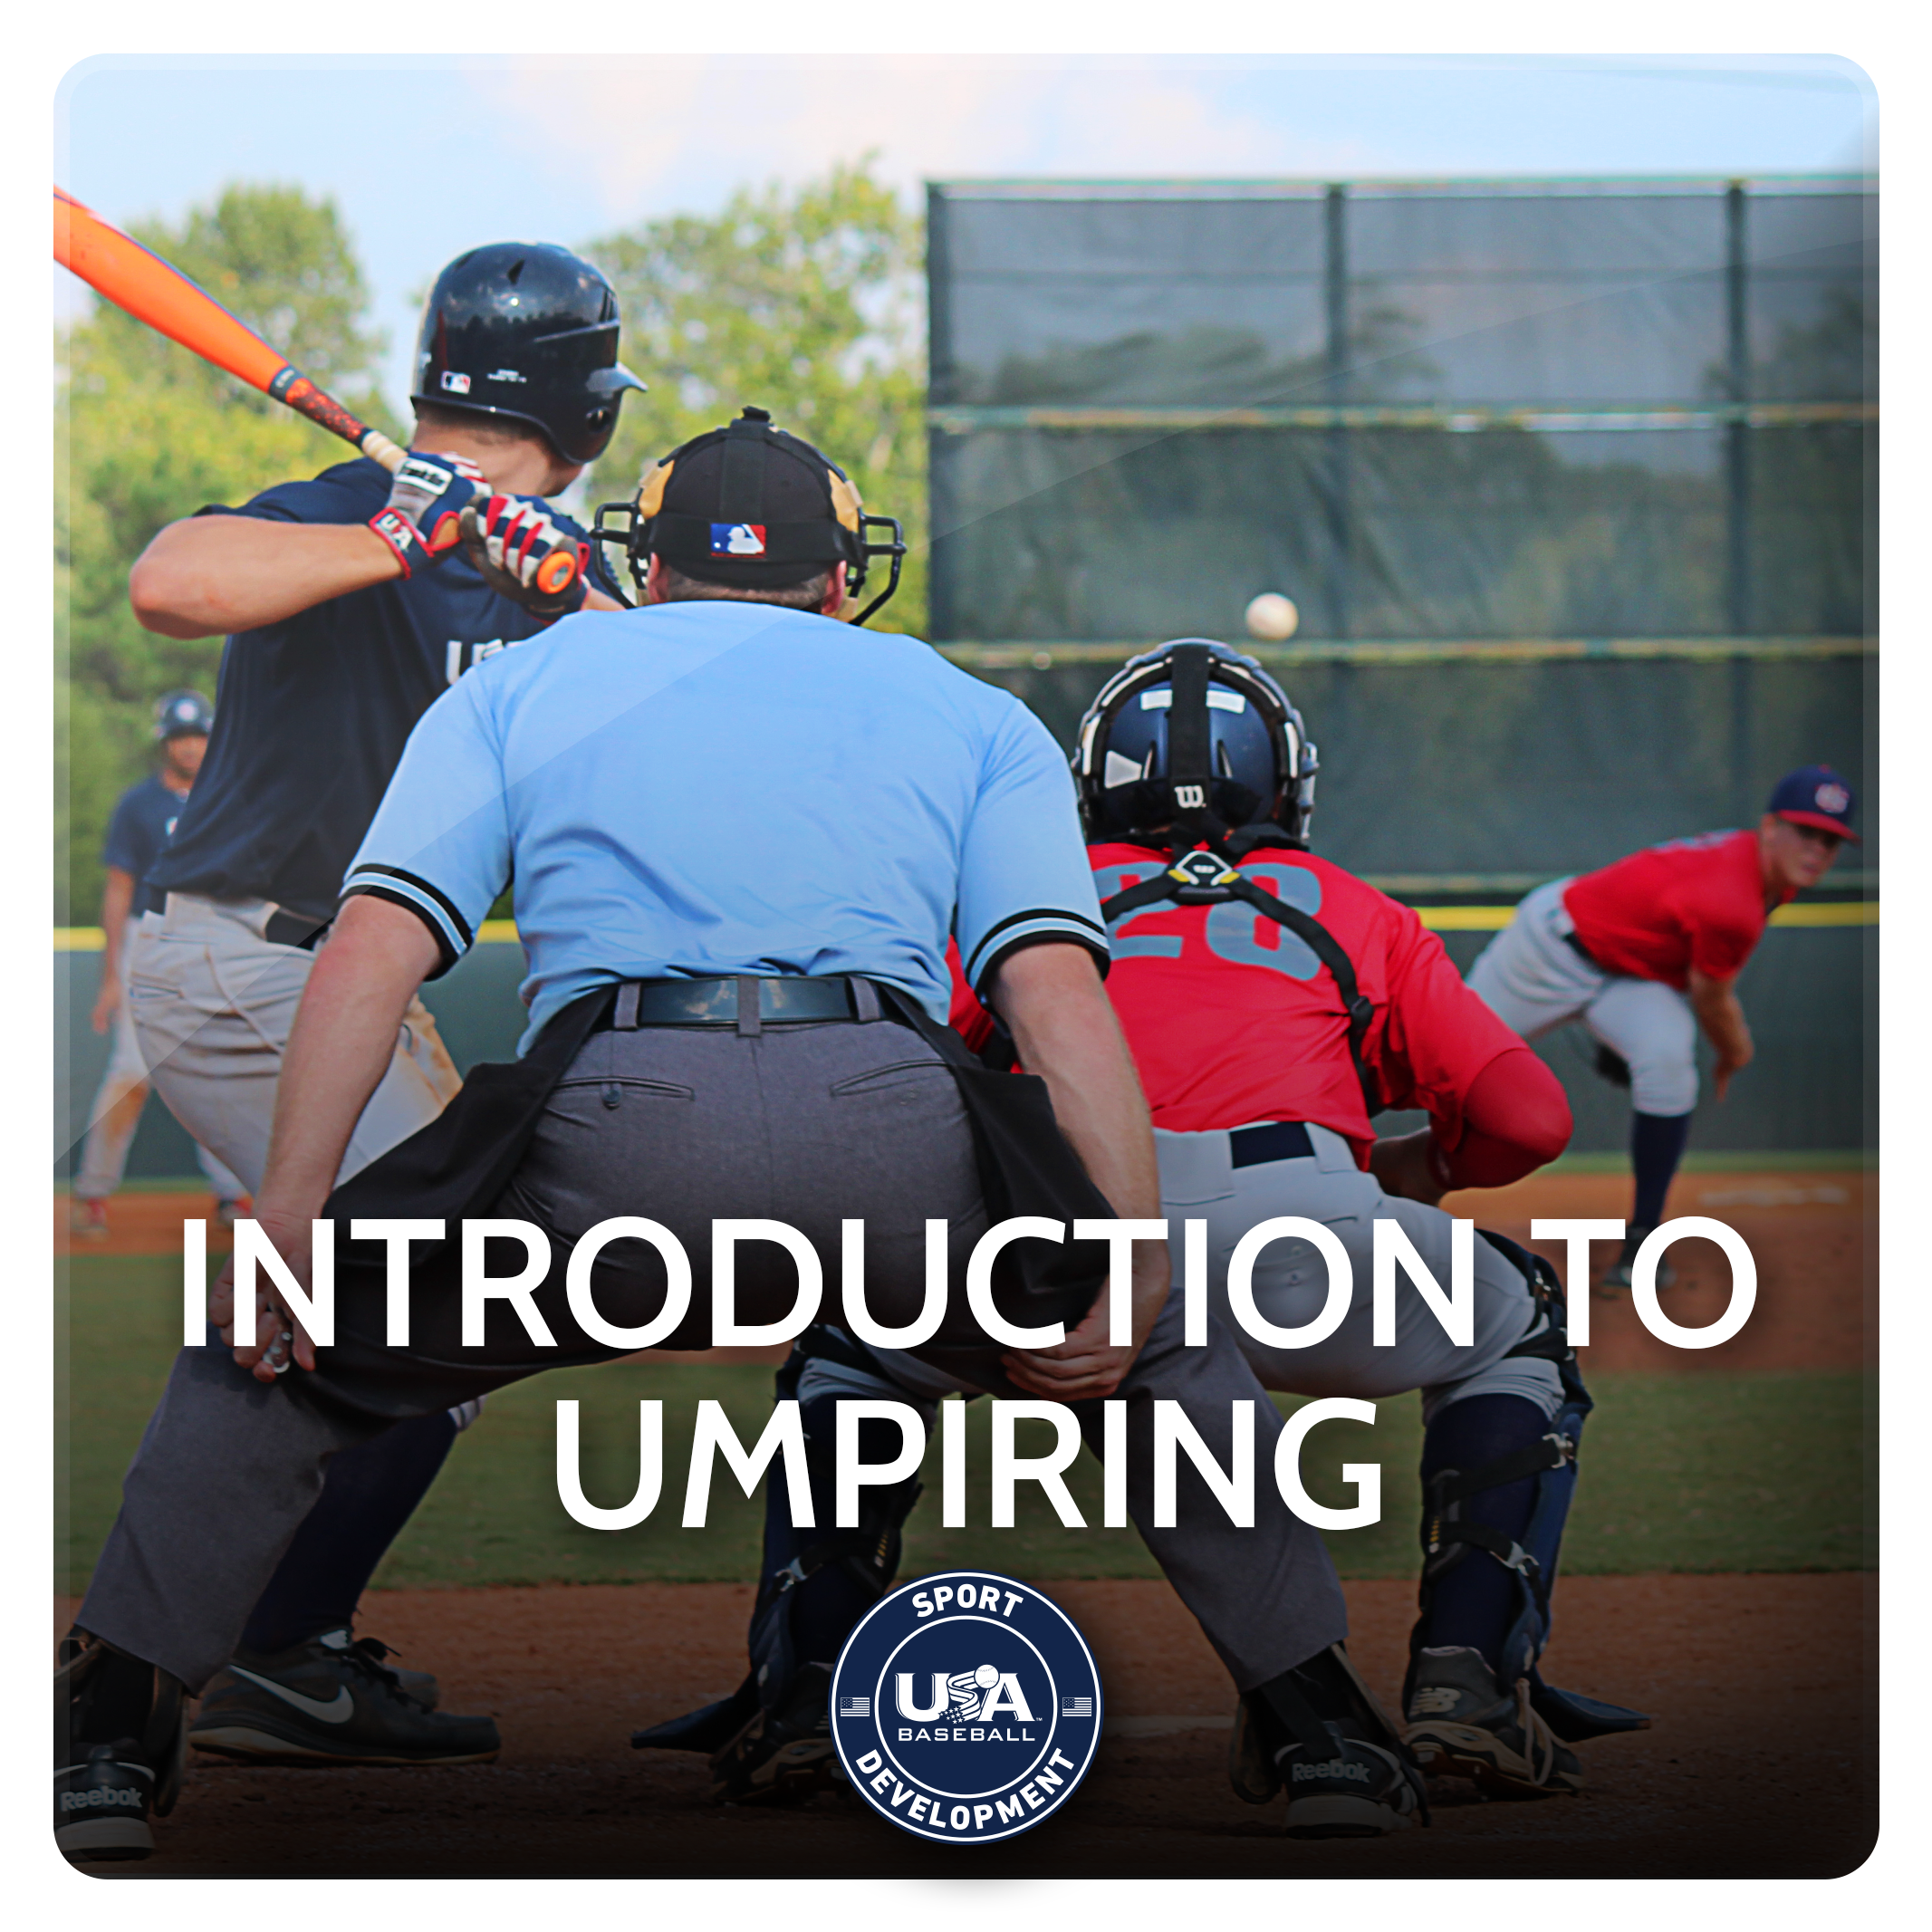 Introduction to Umpiring